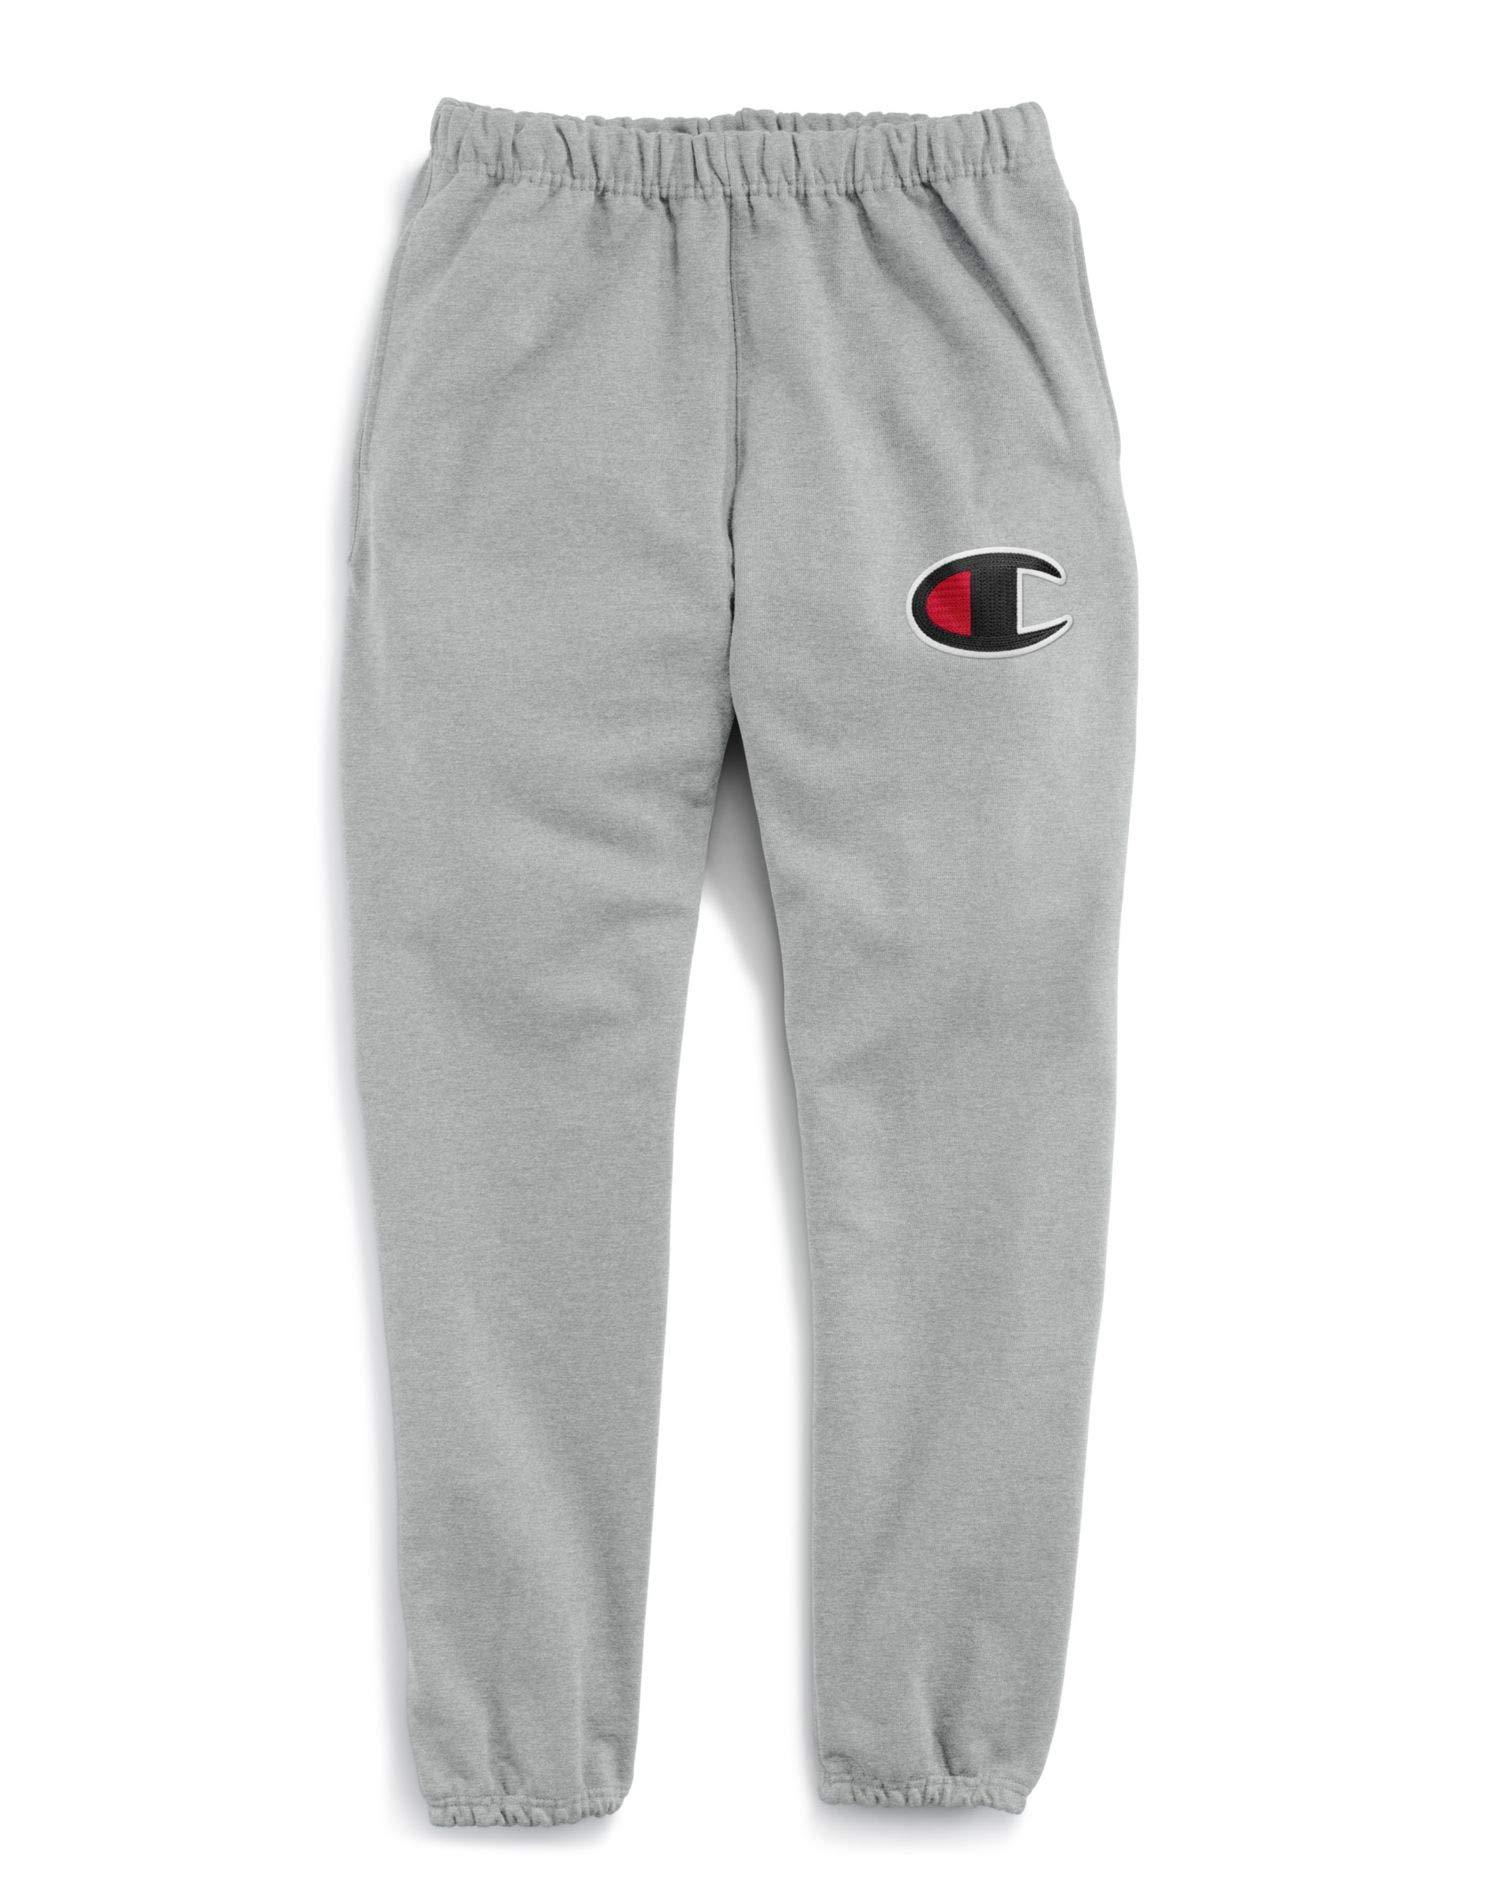 Champion LIFE Men's Reverse Weave Pants with Pockets